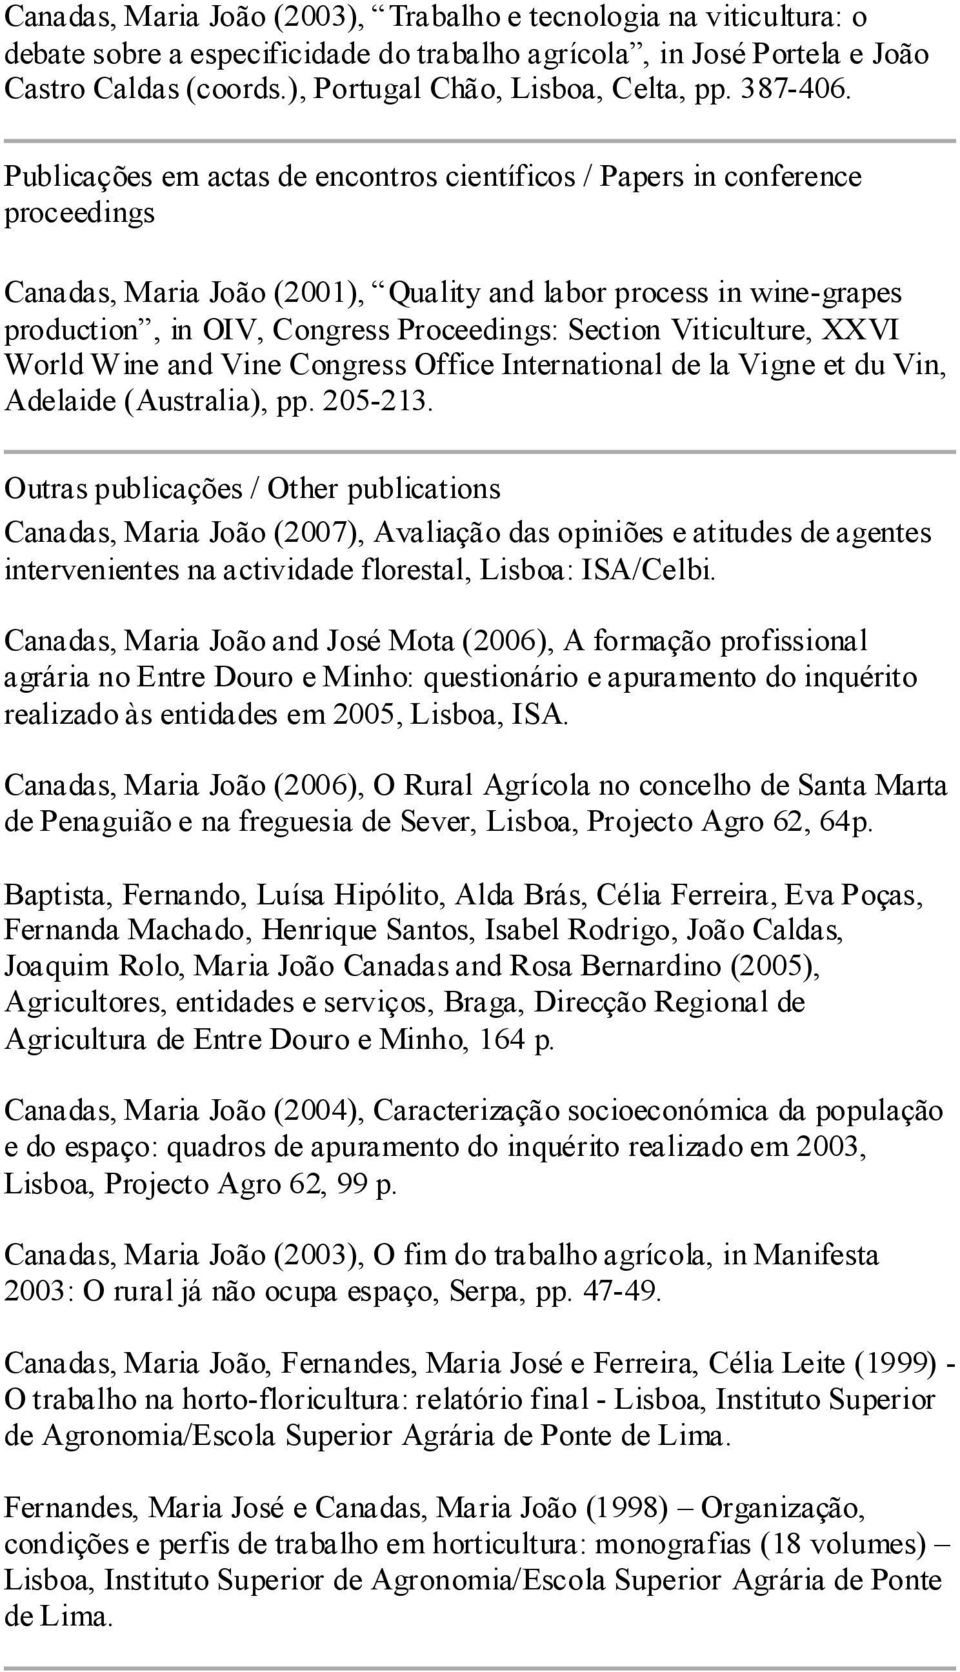 Publicações em actas de encontros científicos / Papers in conference proceedings Canadas, Maria João (2001), Quality and labor process in wine-grapes production, in OIV, Congress Proceedings: Section